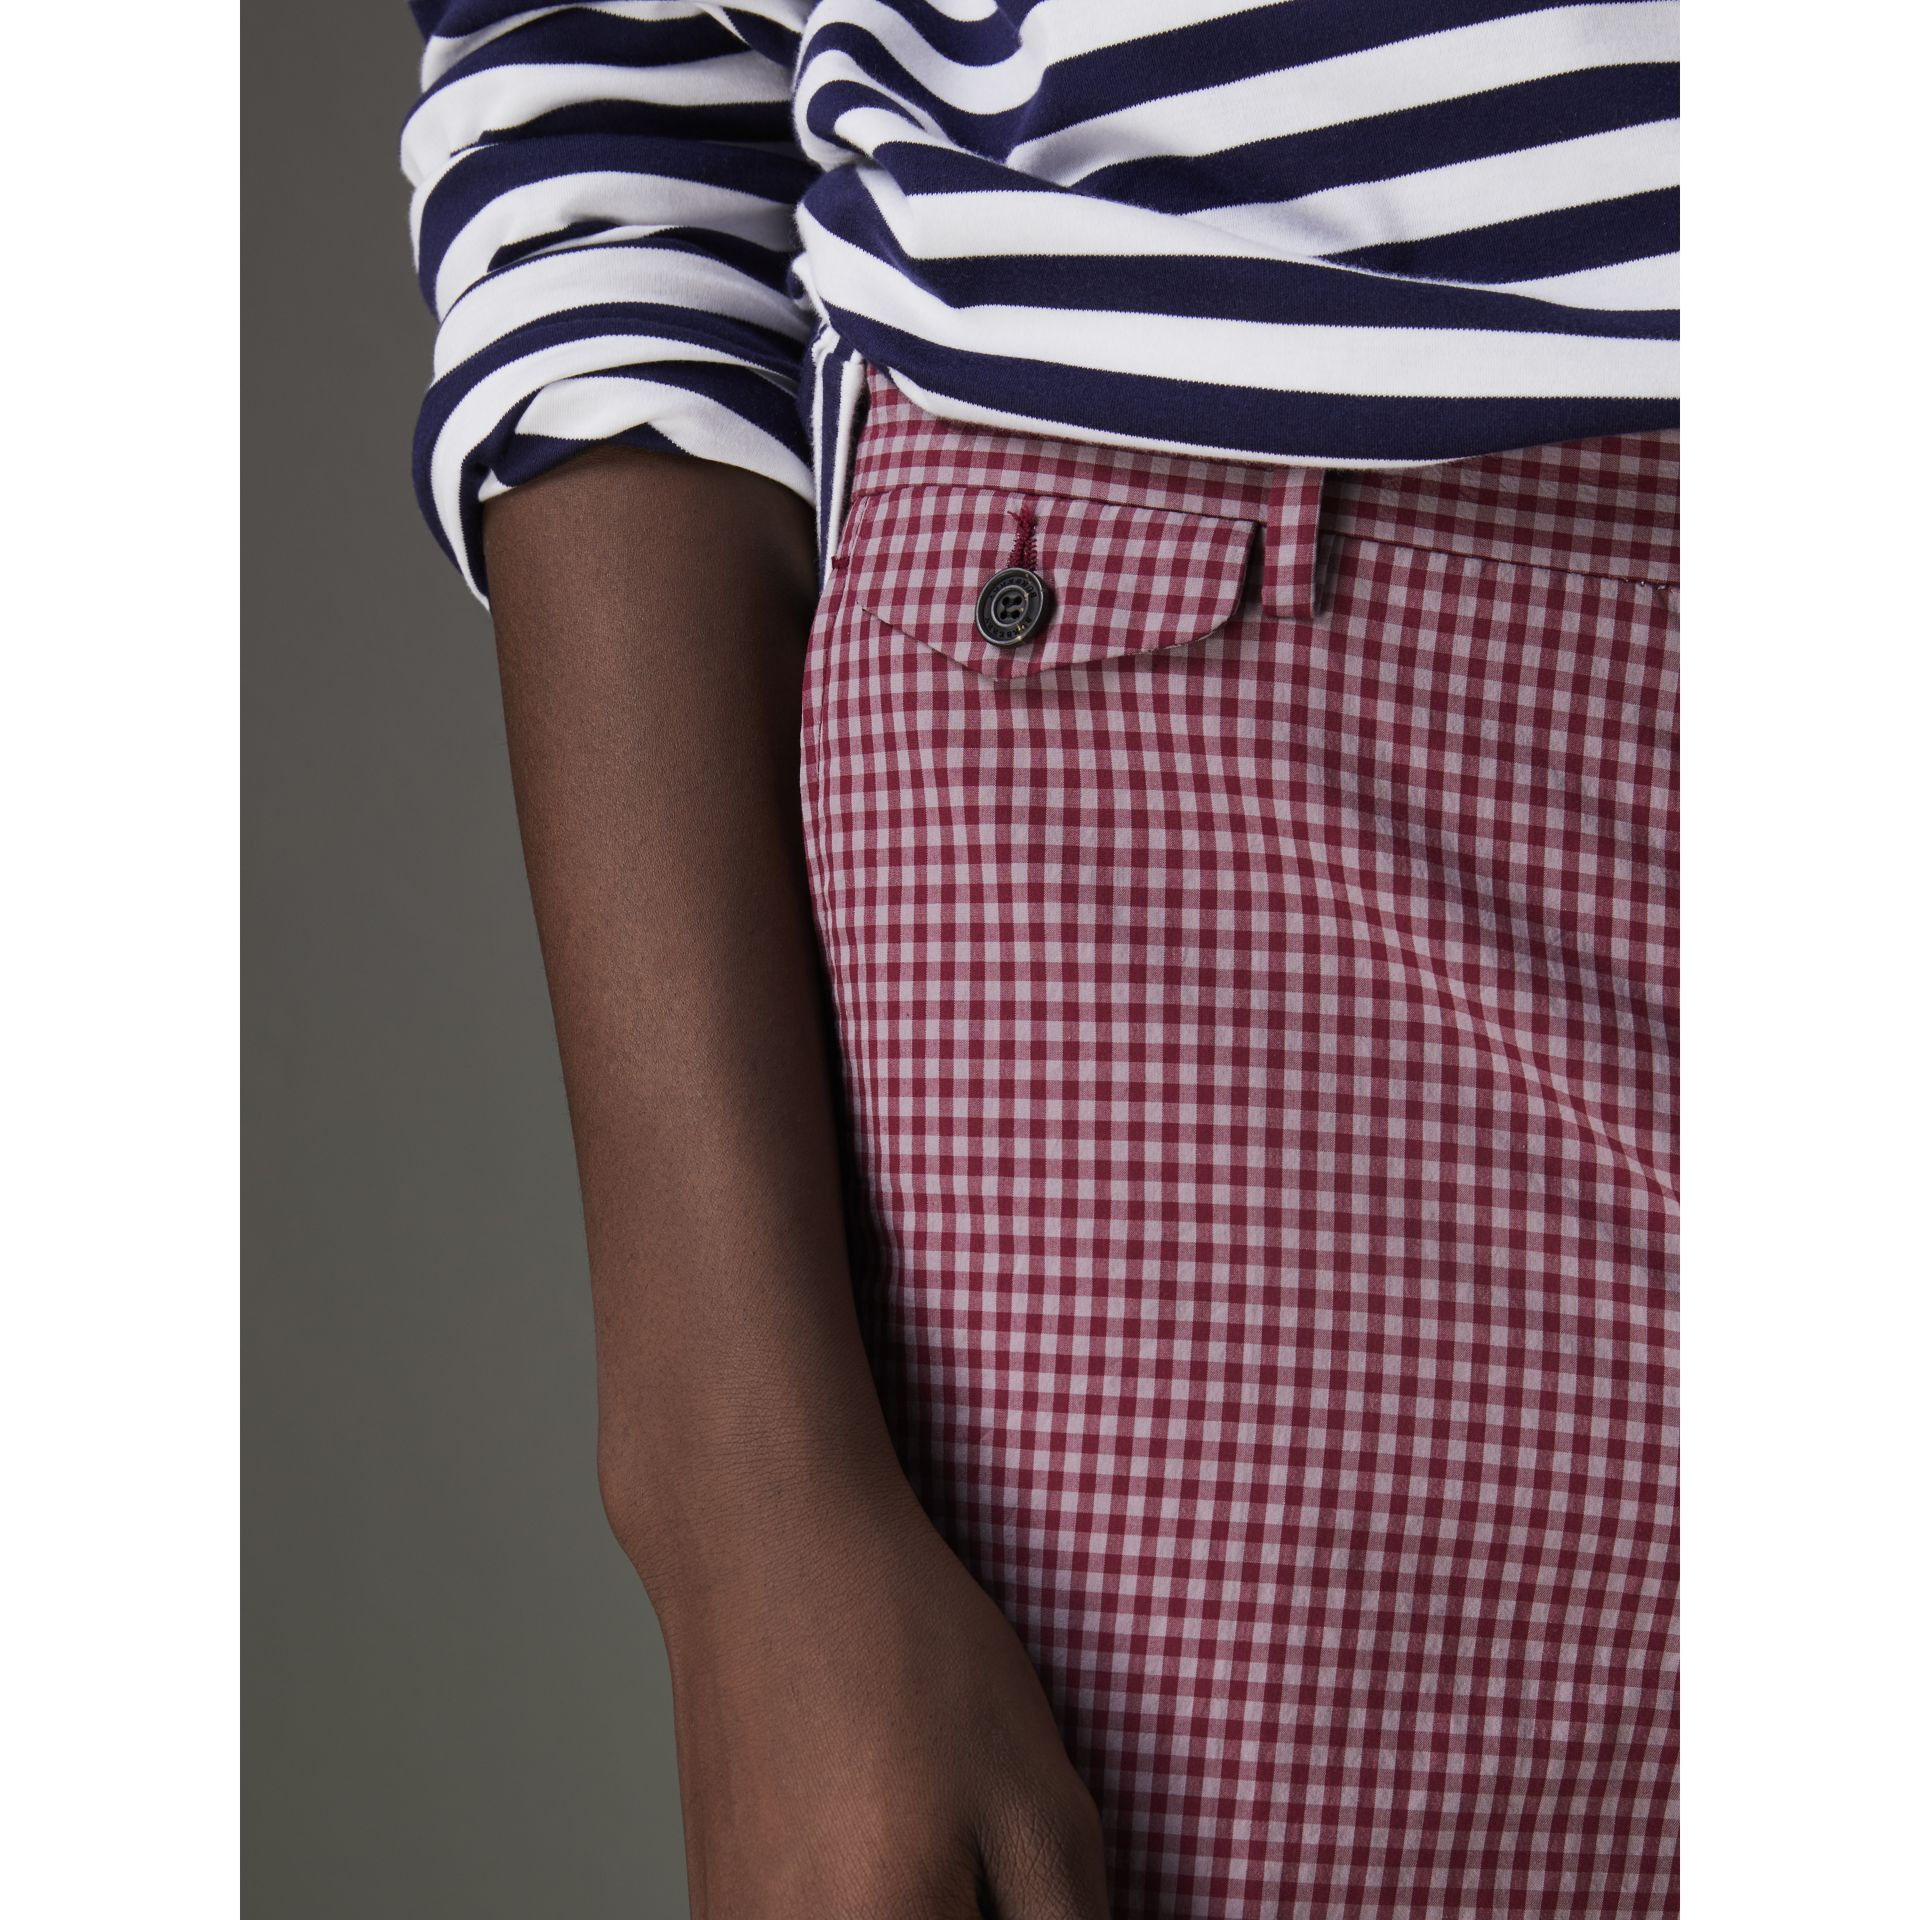 Gingham Cotton Tailored Shorts in Elderberry - Men | Burberry Australia - gallery image 1